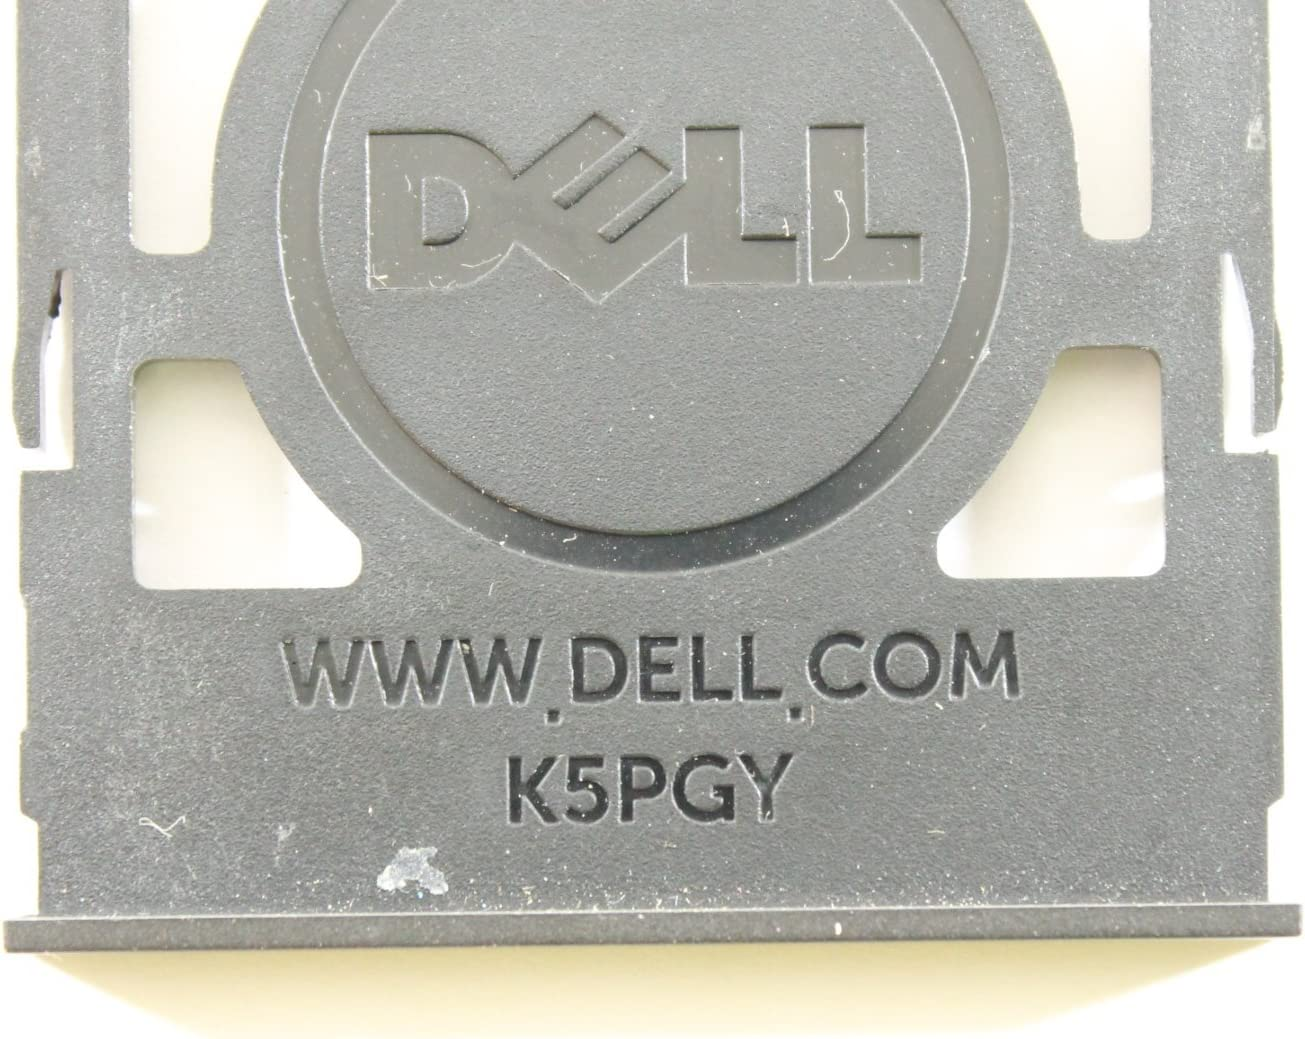 Dell K5pgy Express Card Ec Slot Blank Precision M4600 Computers Accessories